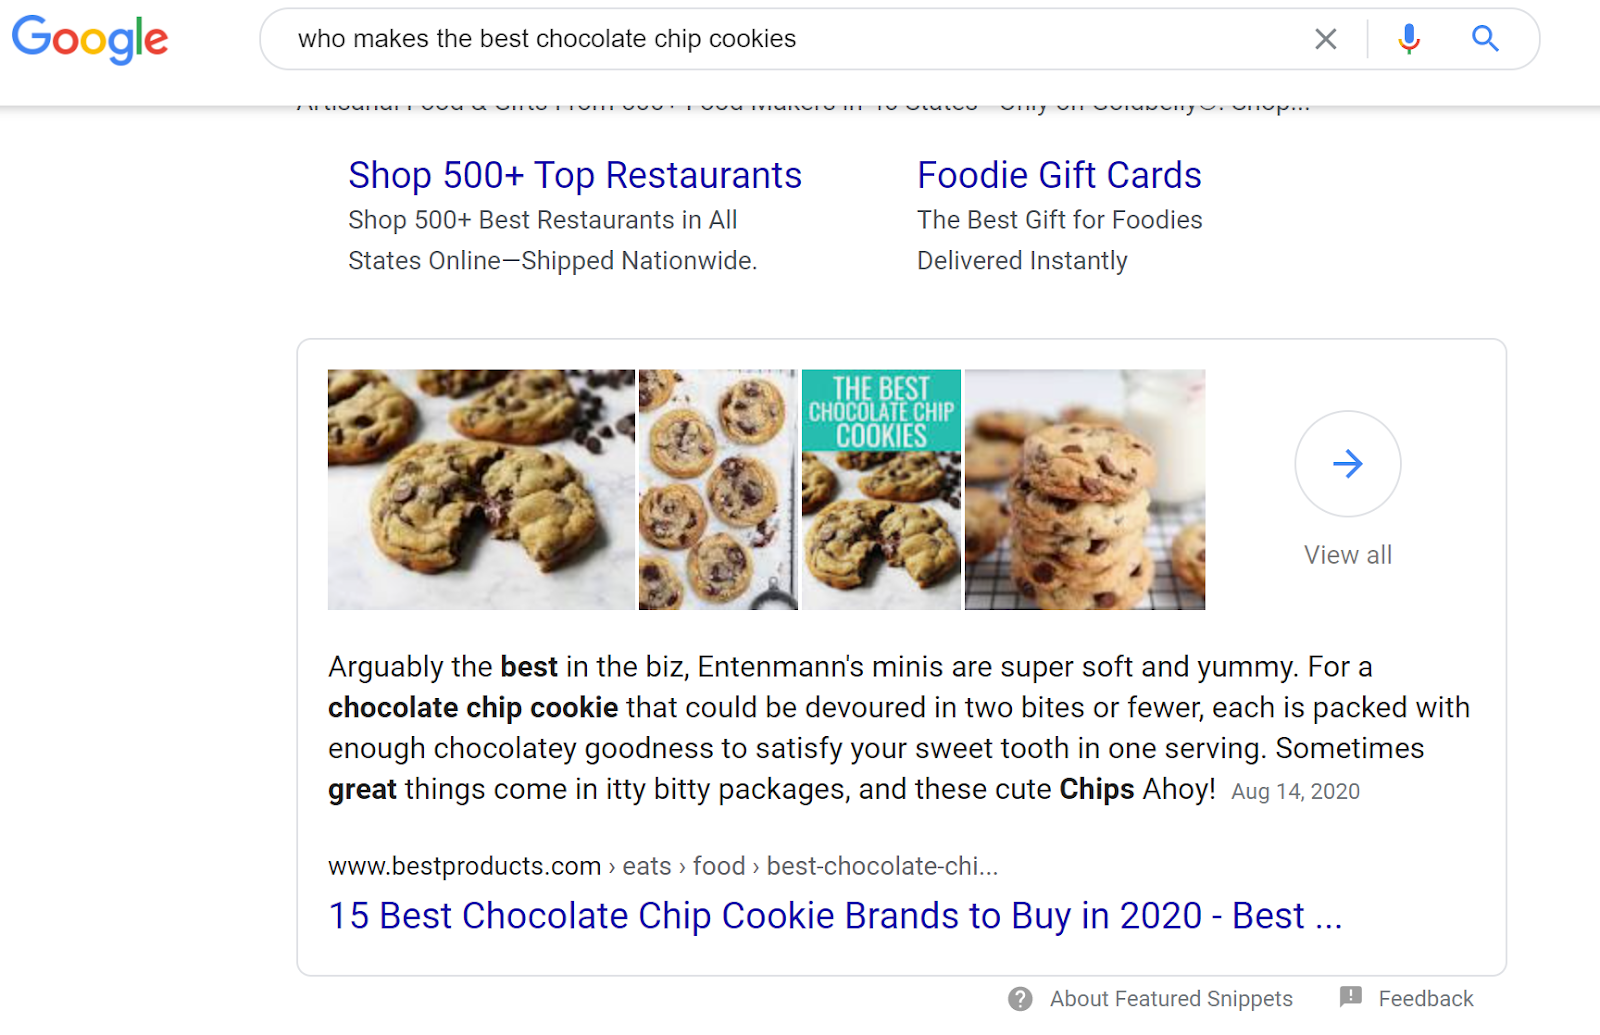 iSmart Communications Featured Snippet